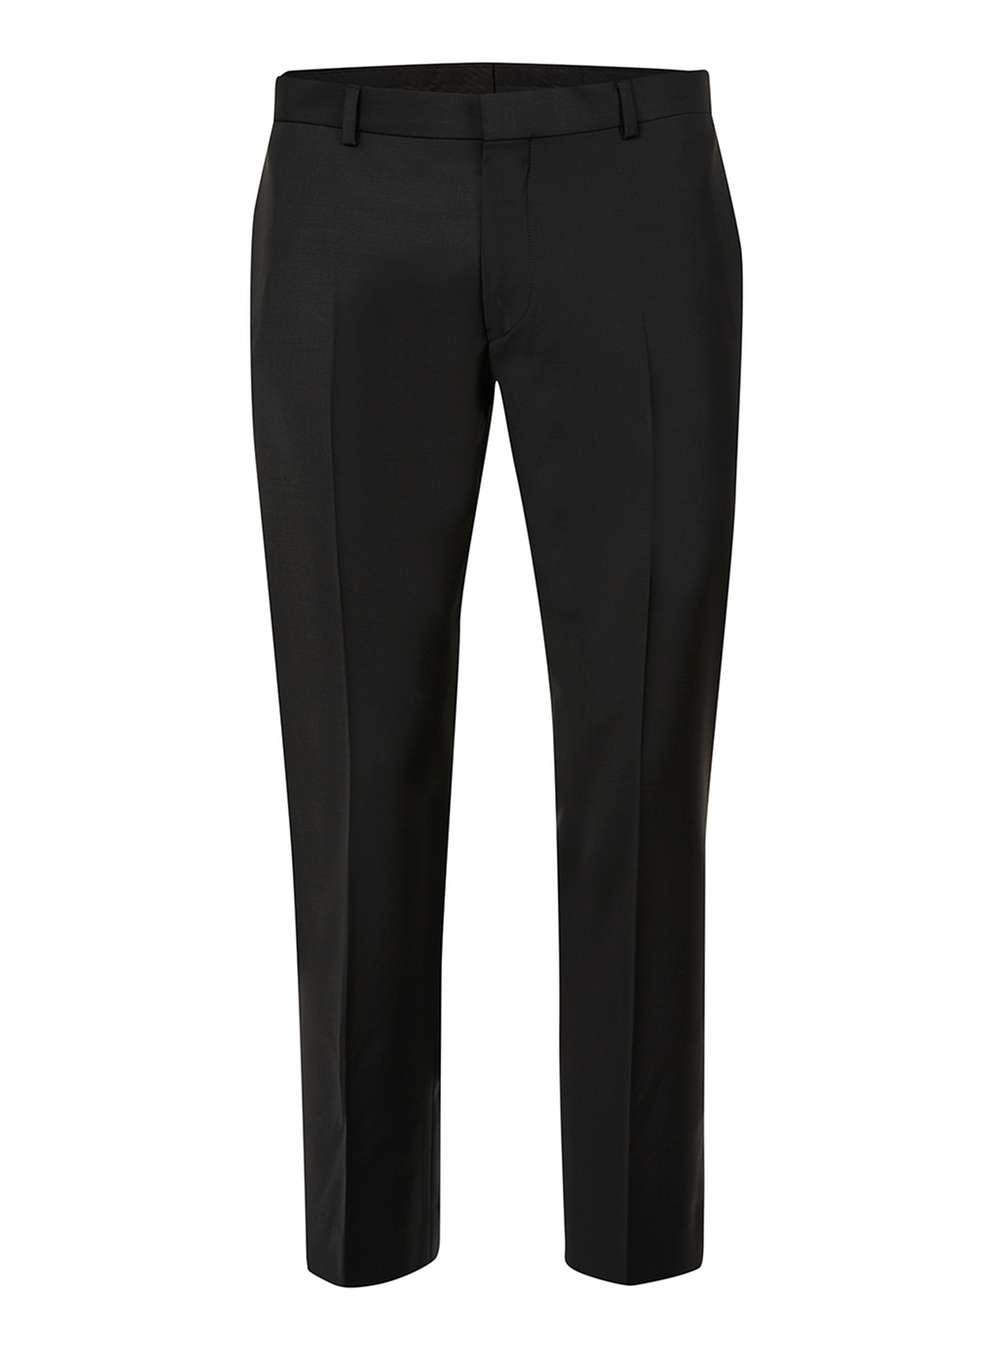 TOPMAN PREMIUM Black Wool Blend Cropped Trousers, £45